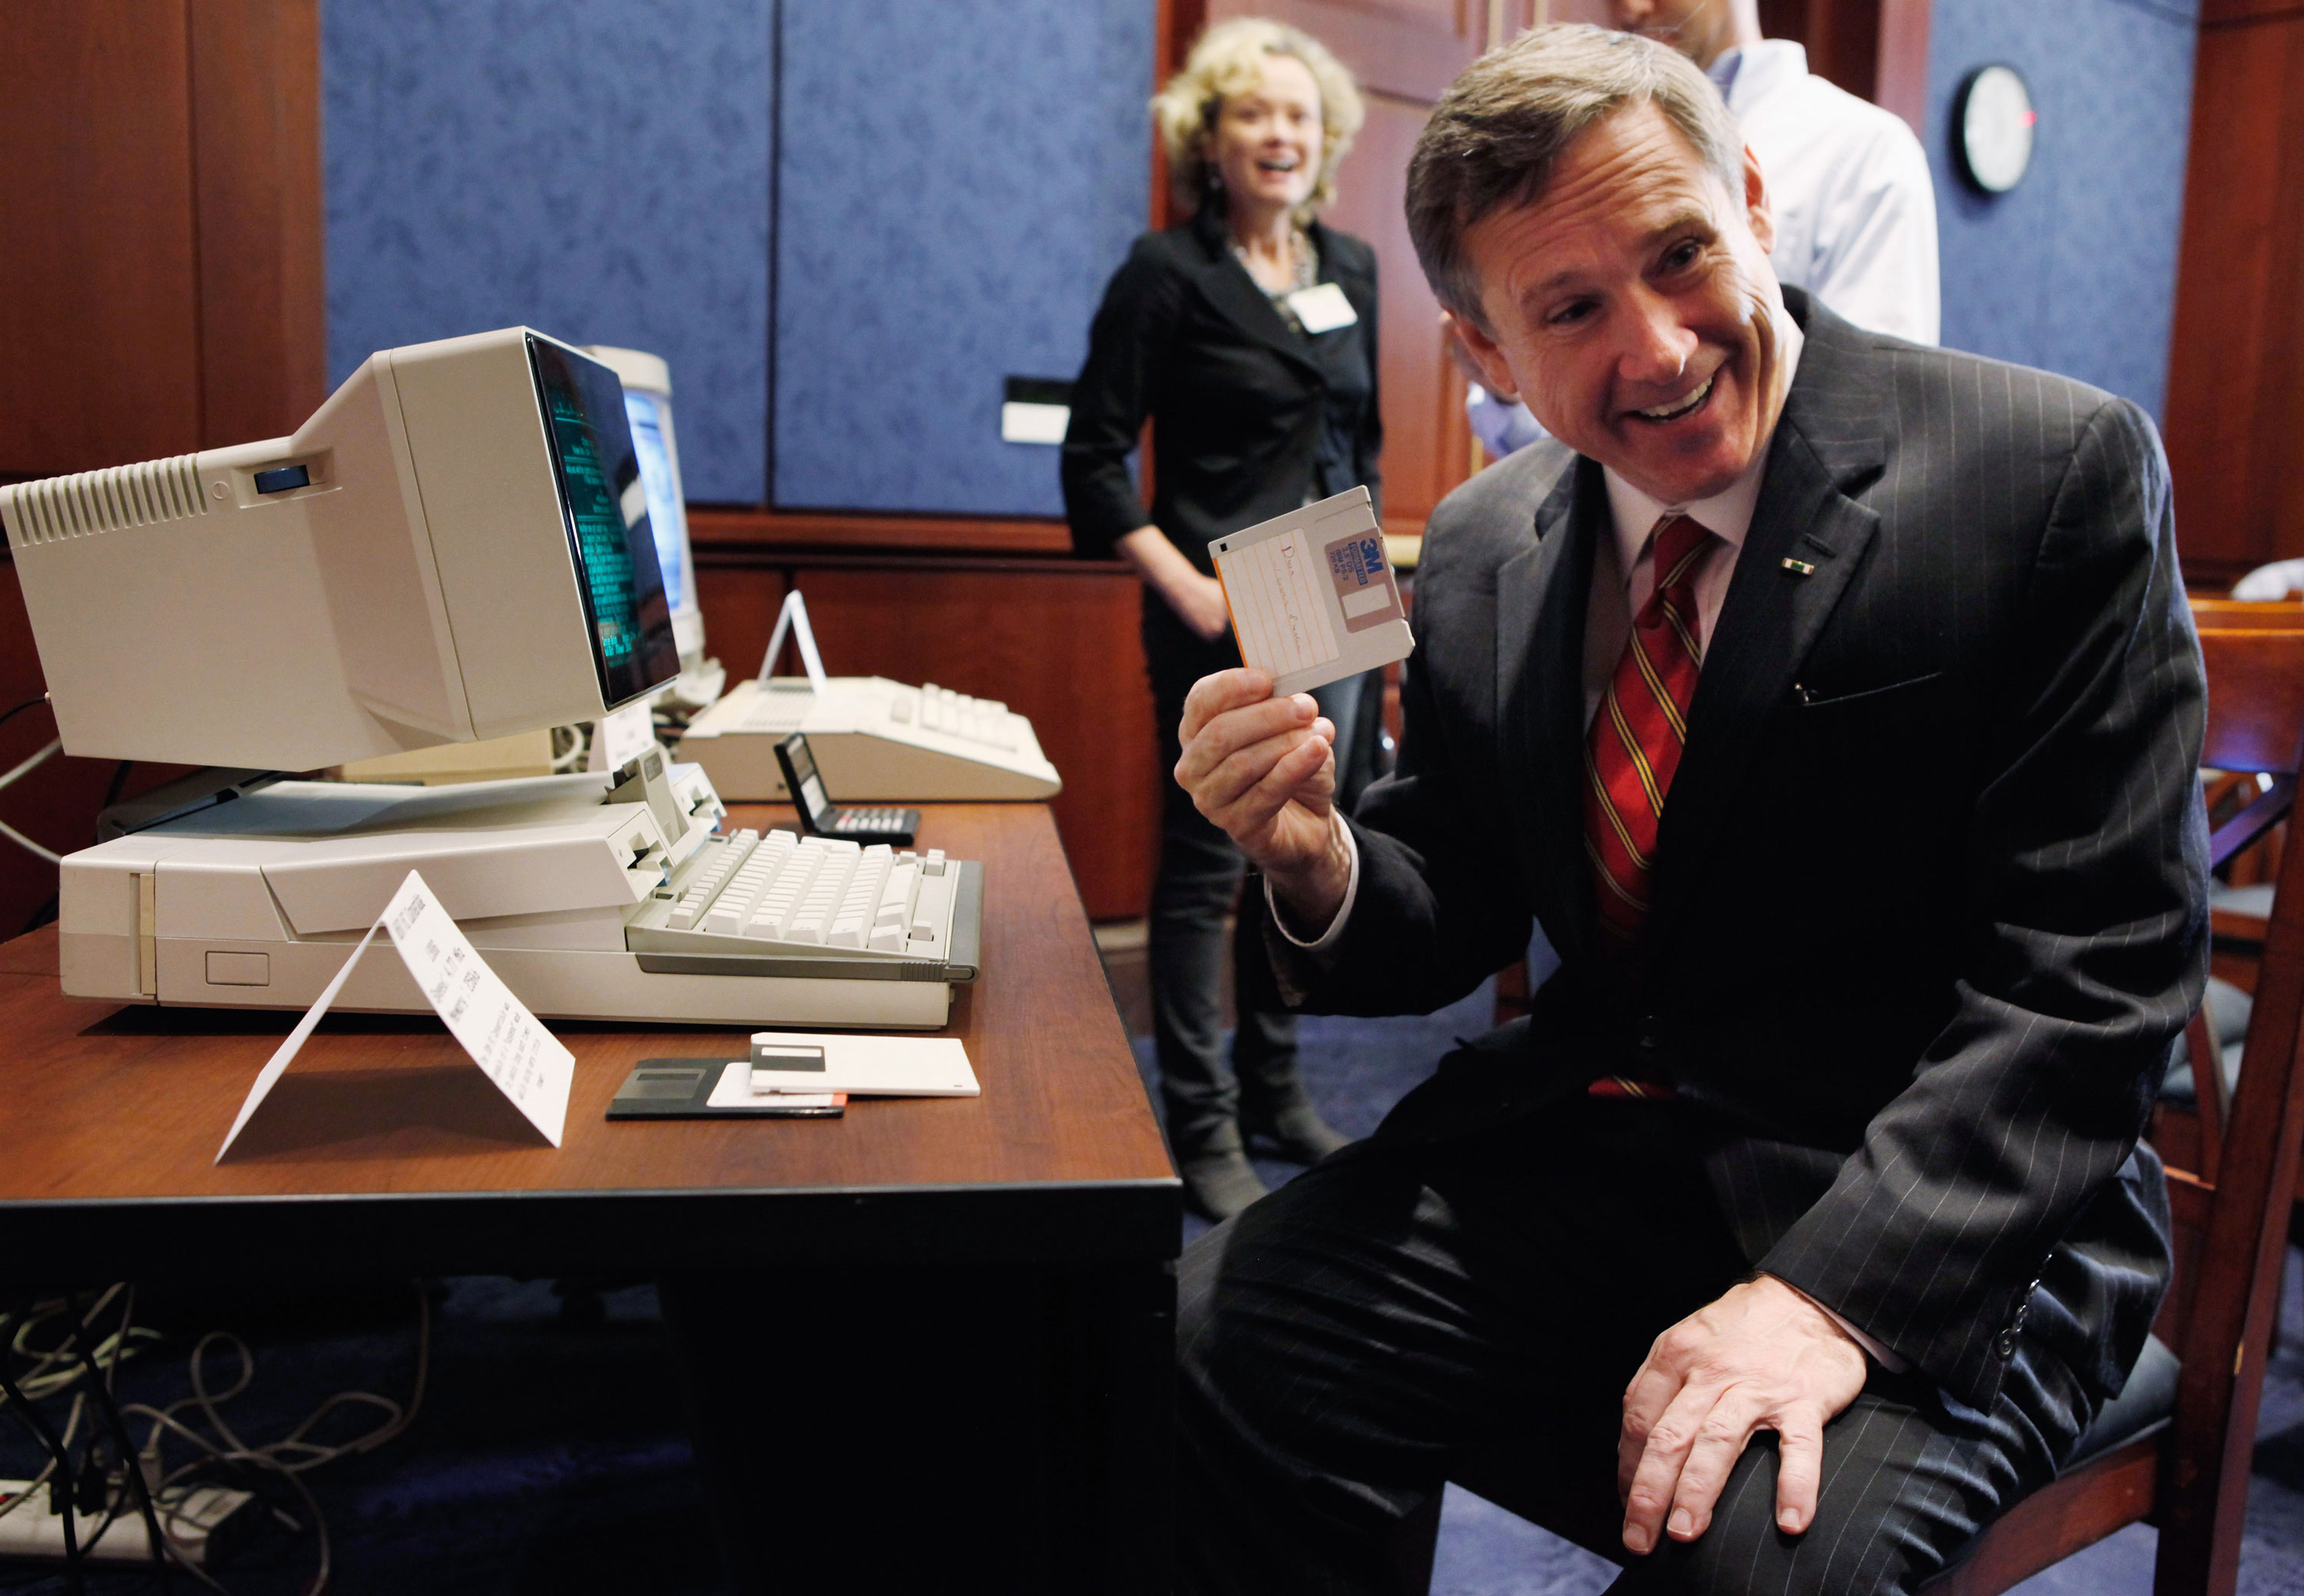 Lawmakers including former U.S. Senator Mark Kirk, seen here holding up a floppy disk in 2011, have been calling for reforms to the Electronic Communications Privacy Act for years.